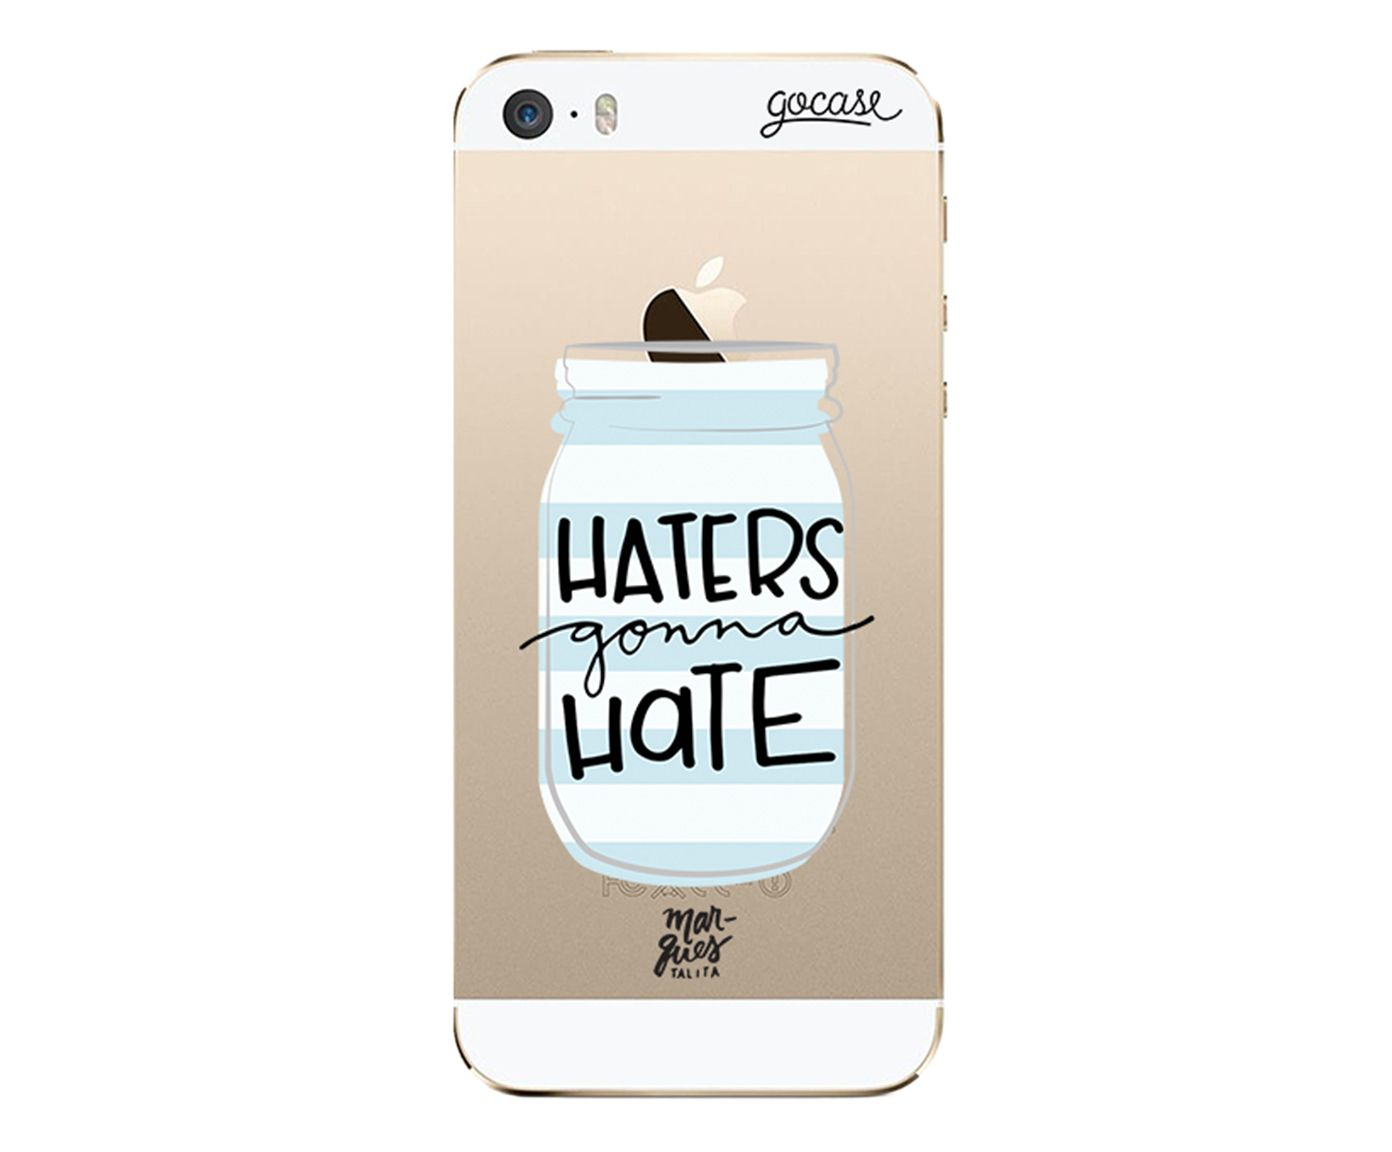 Case Haters Gonna Hate - Para iPhone 5C   Westwing.com.br